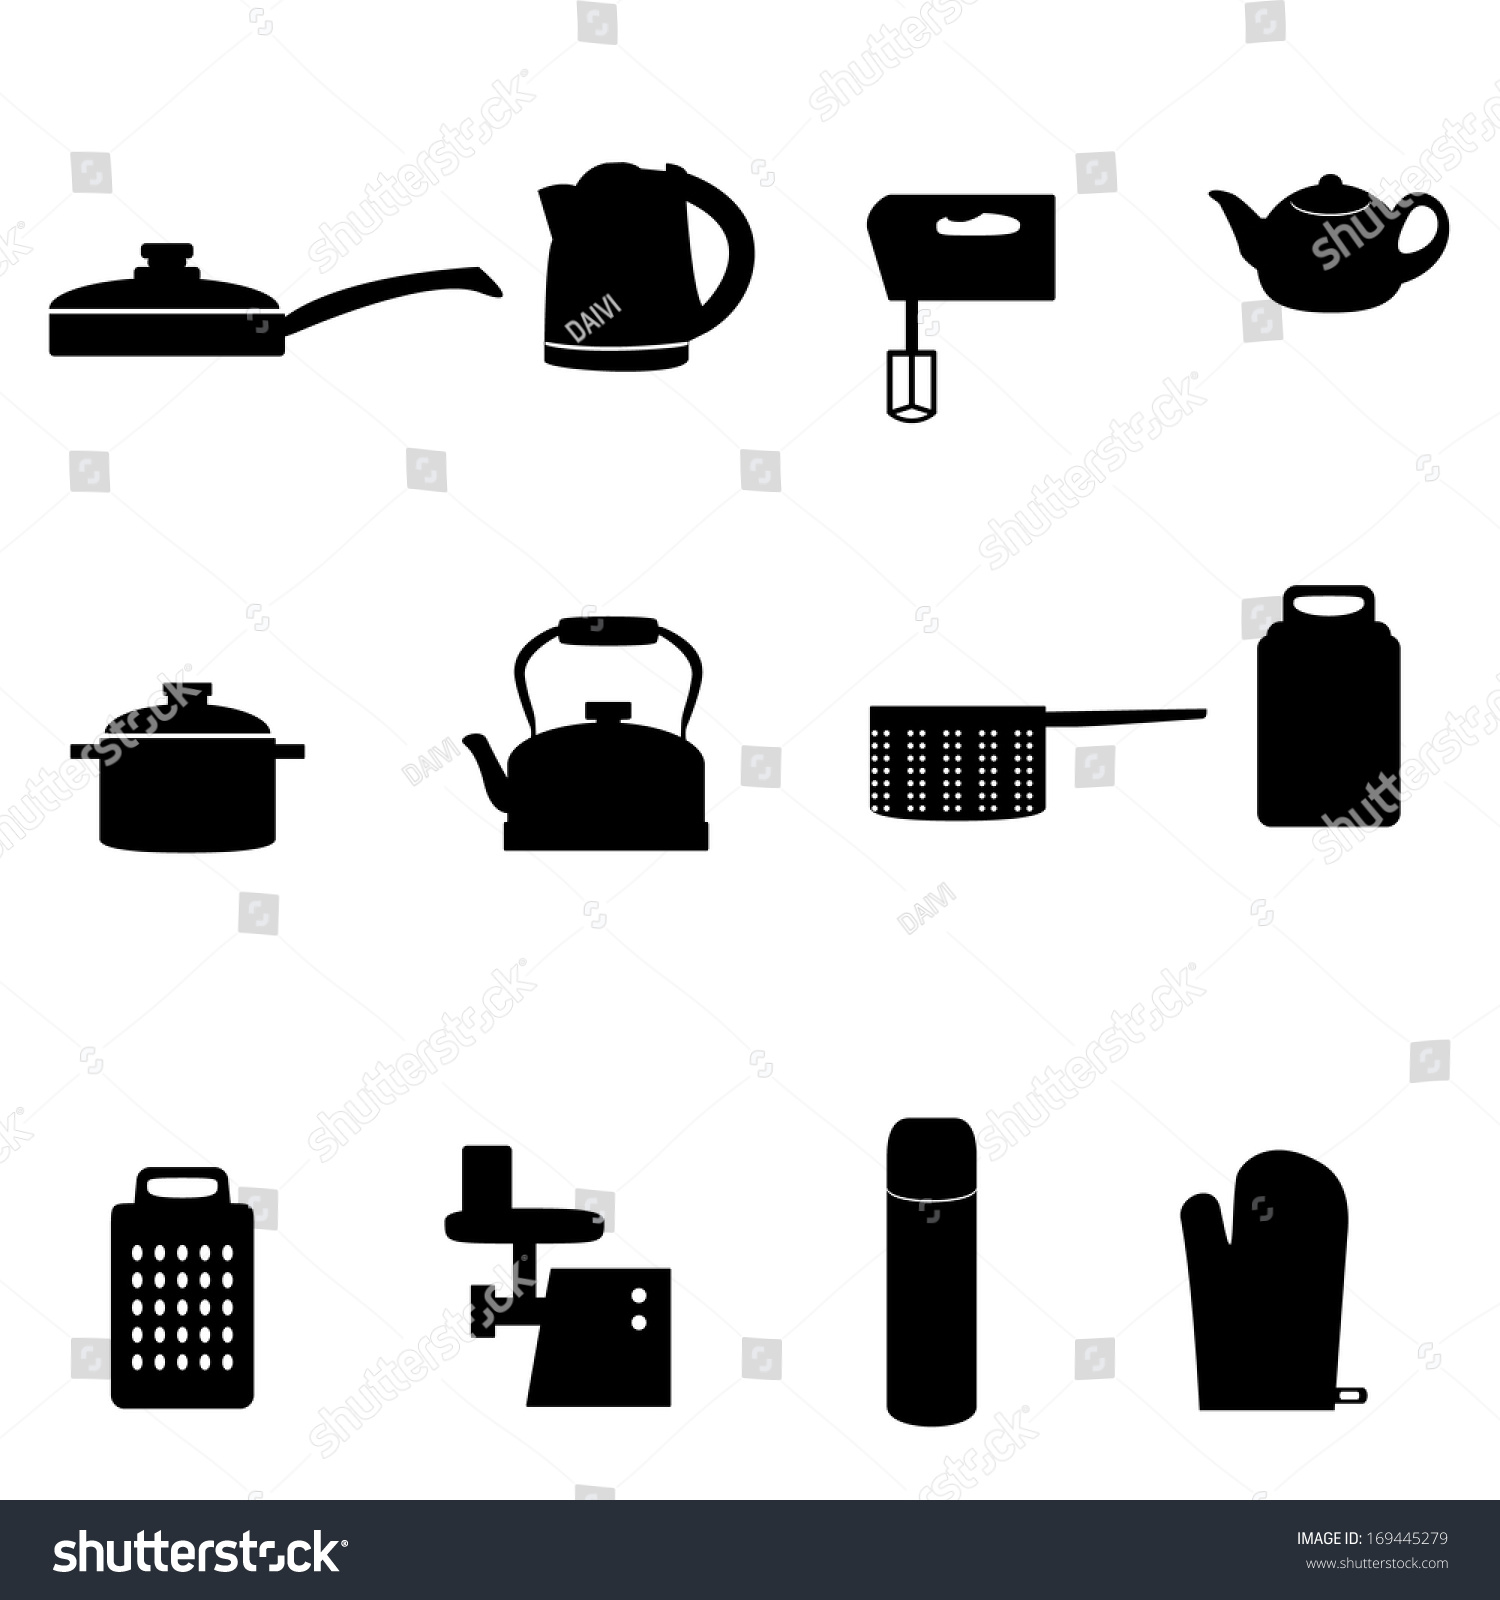 Set Icons Different Types Kitchen Appliances Stock Vector 169445279 ...